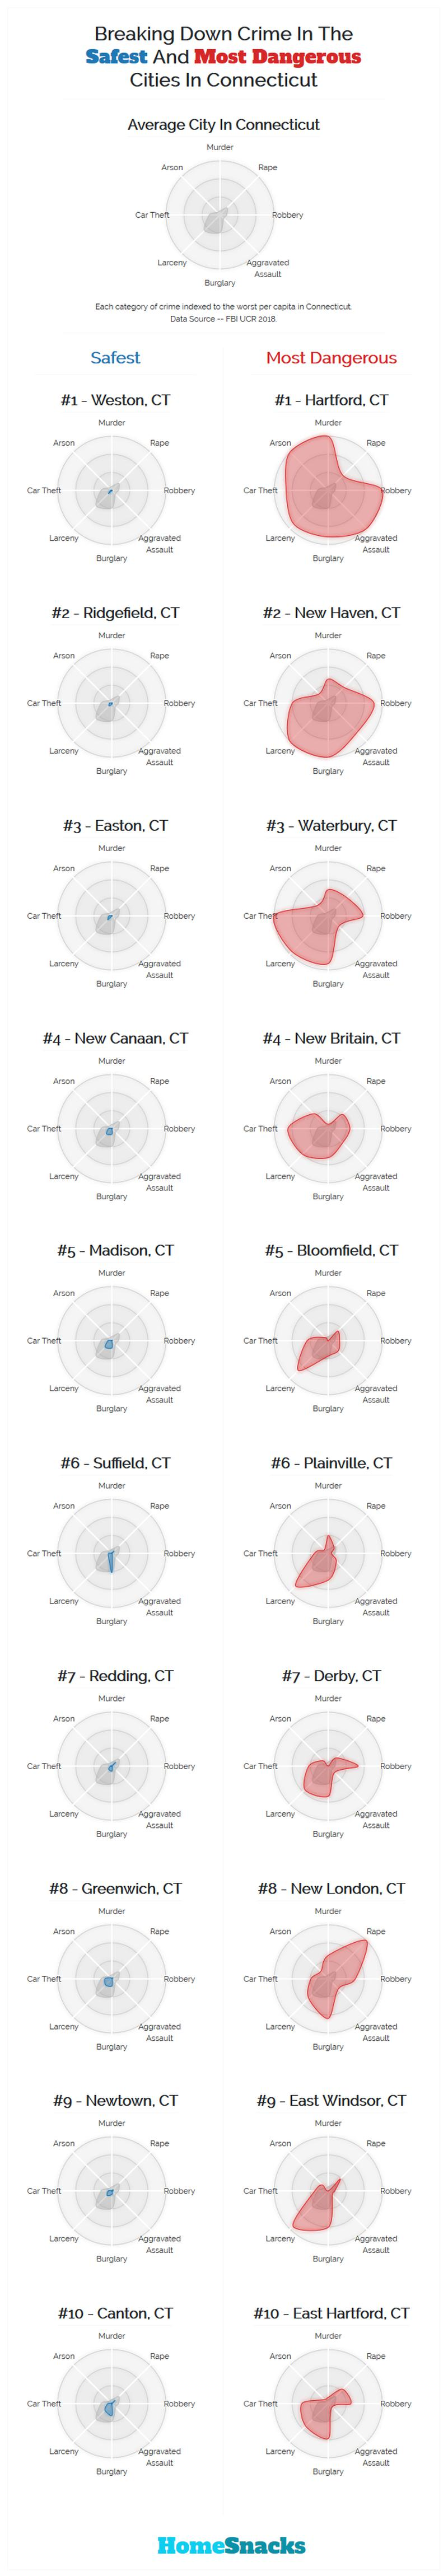 Safest Cities in Connecticut Breakdown